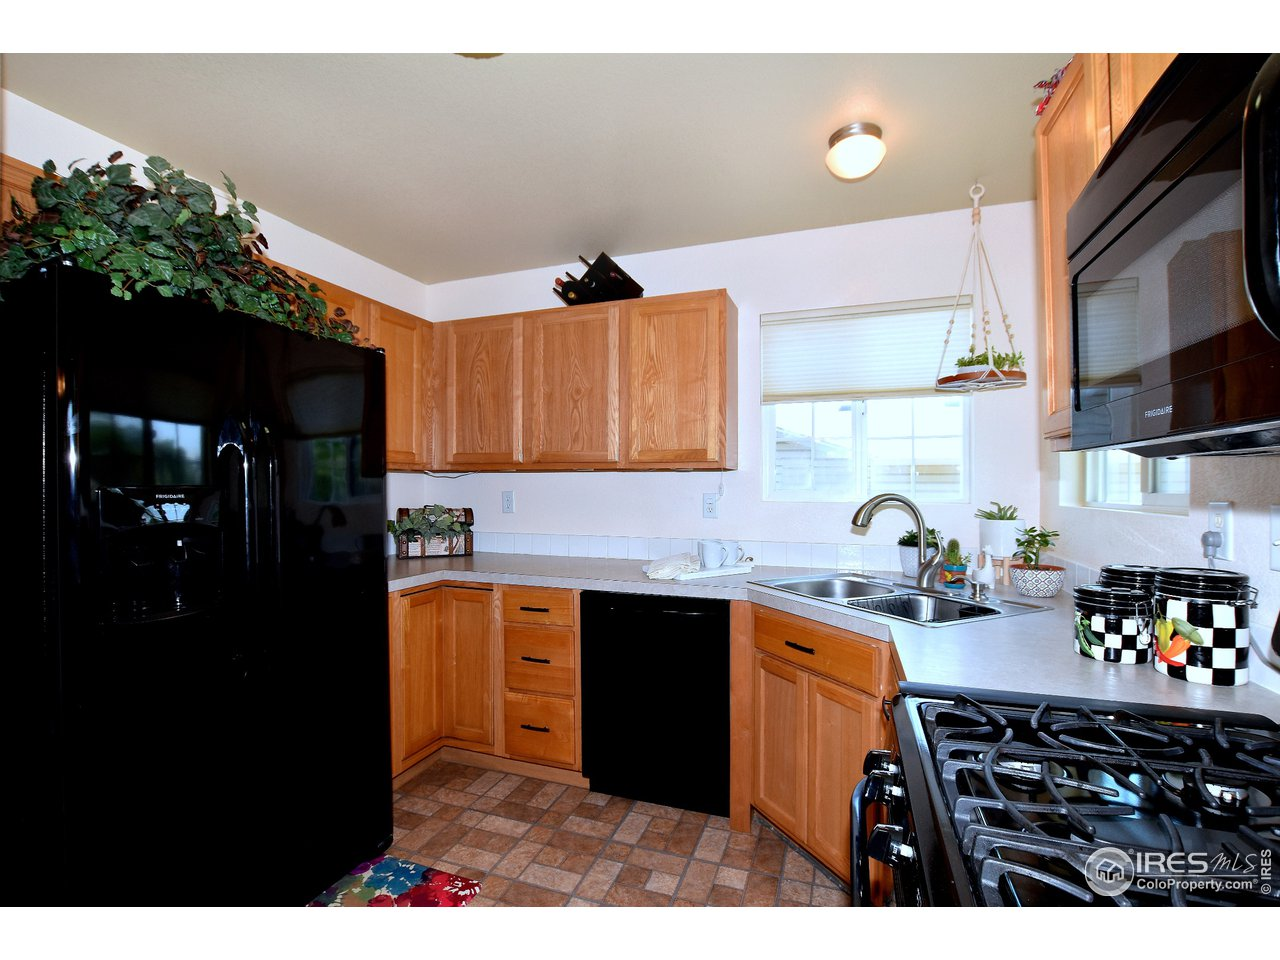 Cook's kitchen with newer Gas Range/oven, dishwasher, microwave and Refrigerator